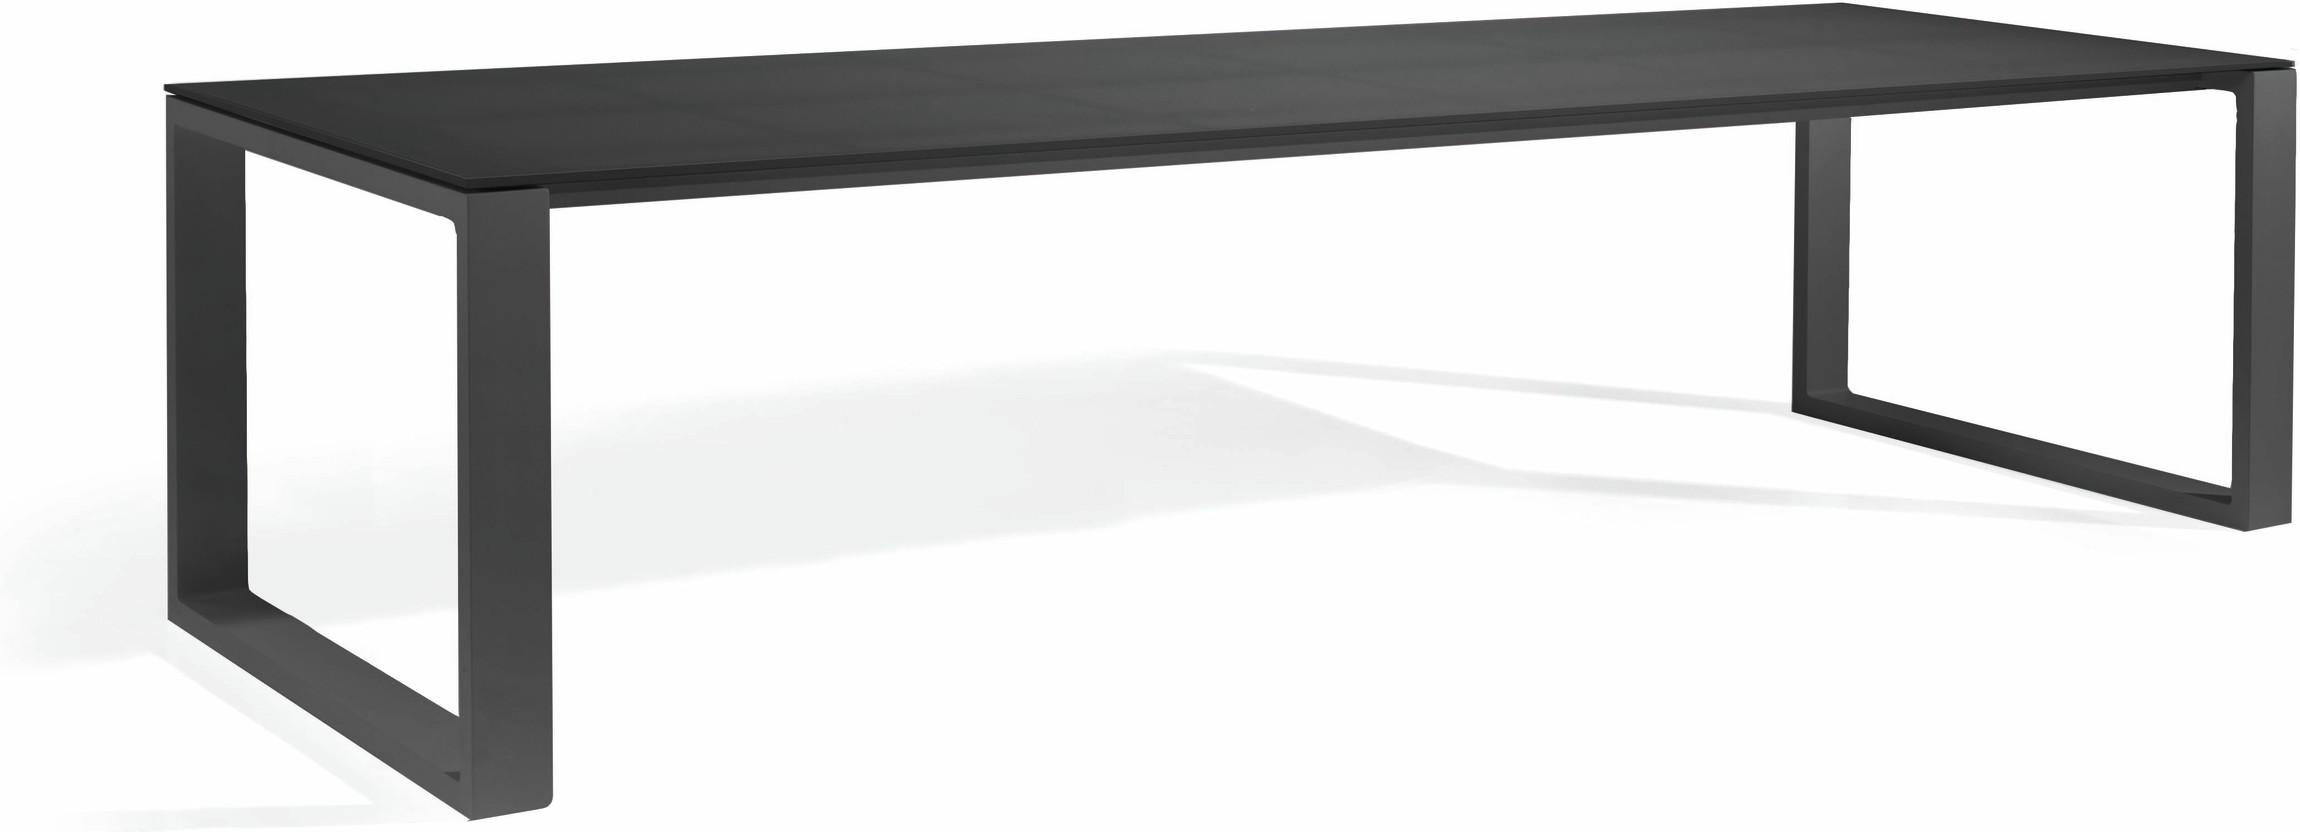 Fuse Dining table - lava - TRB 300